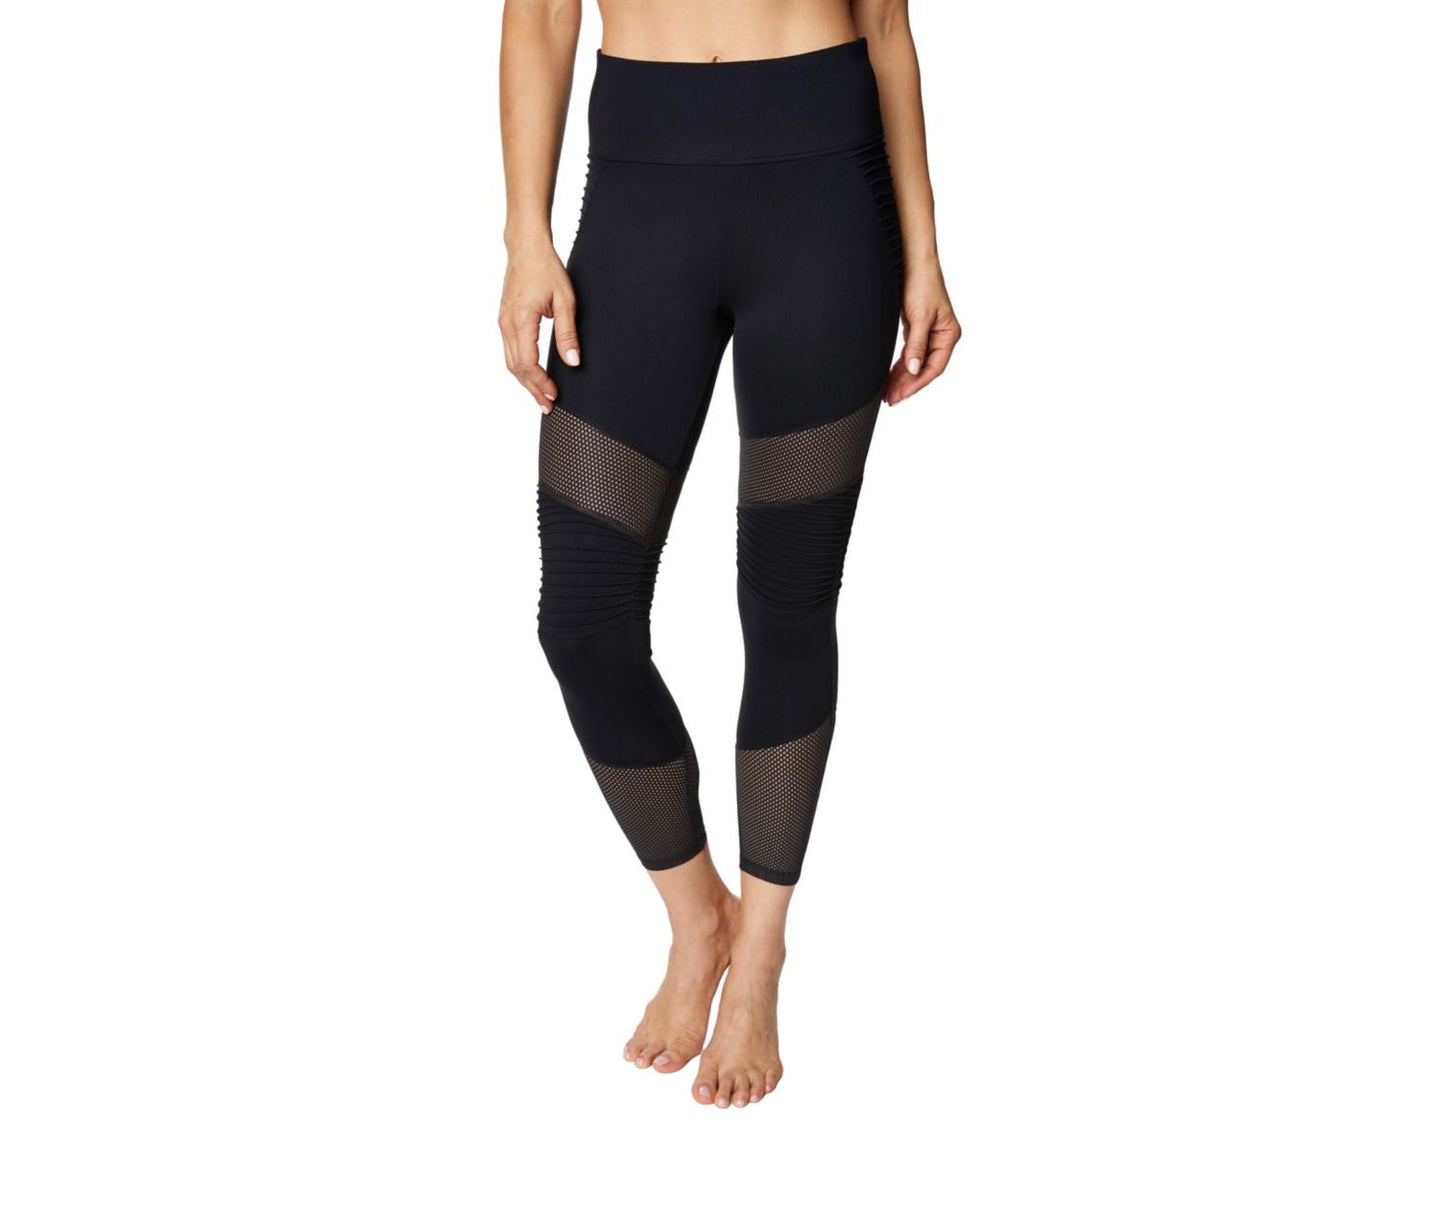 PINTUCK AND MESH PANEL LEGGING BLACK - APPAREL - Betsey Johnson